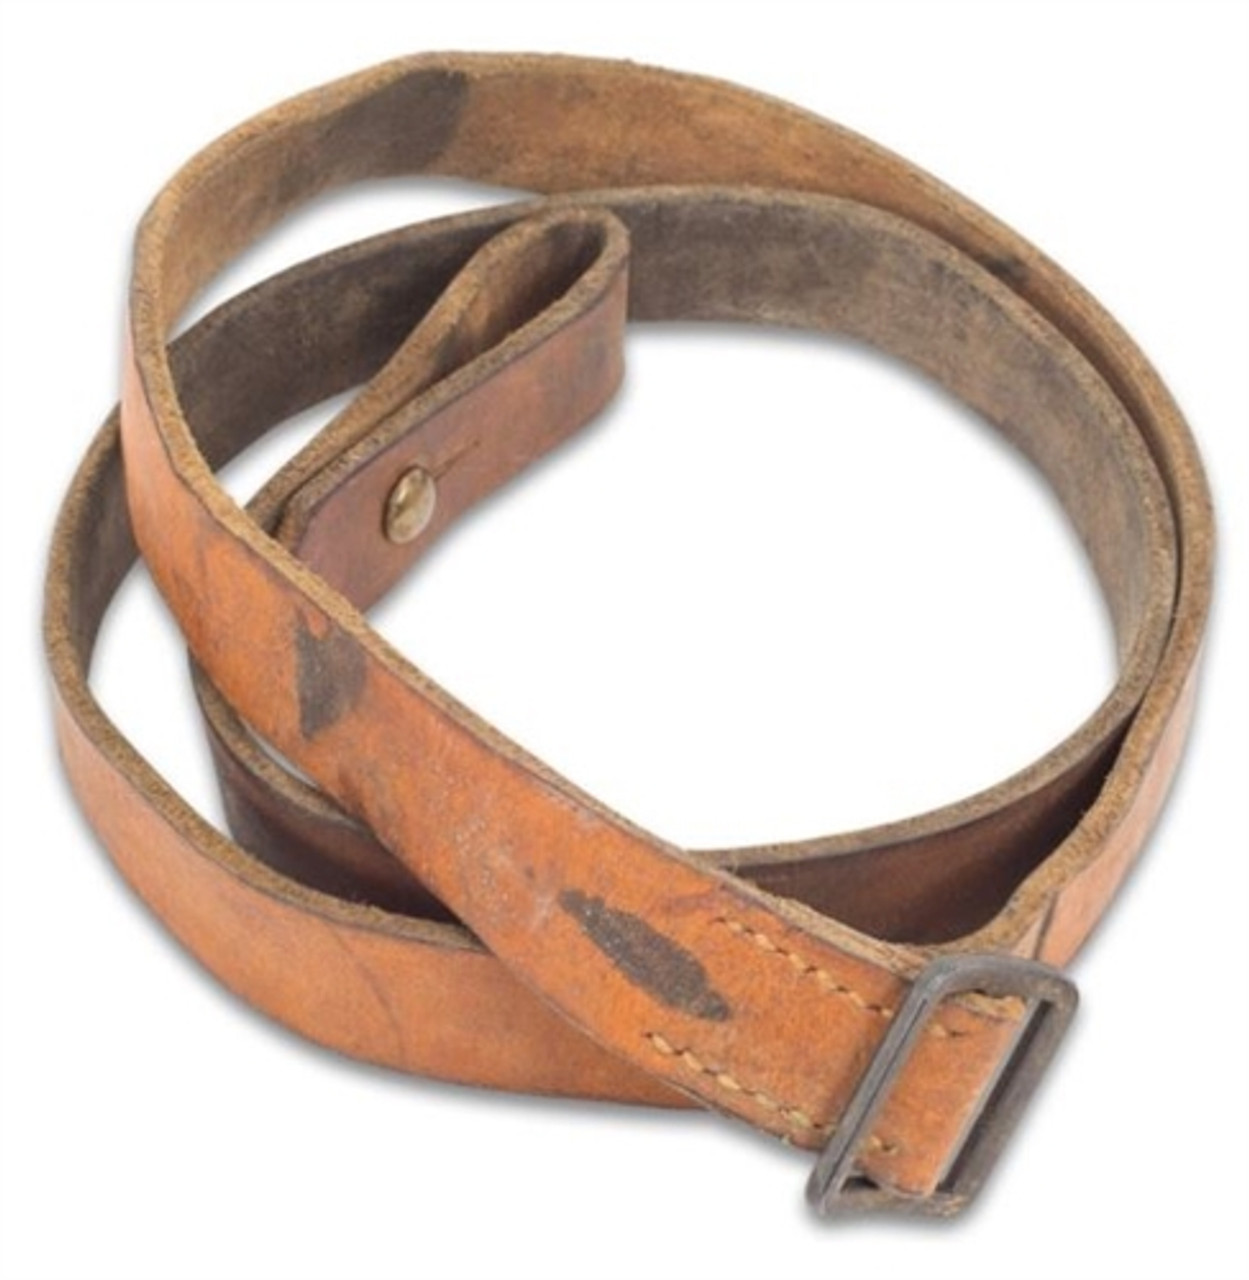 Yugoslavian M56 Leather Sling - Usedfrom Hessen Antique